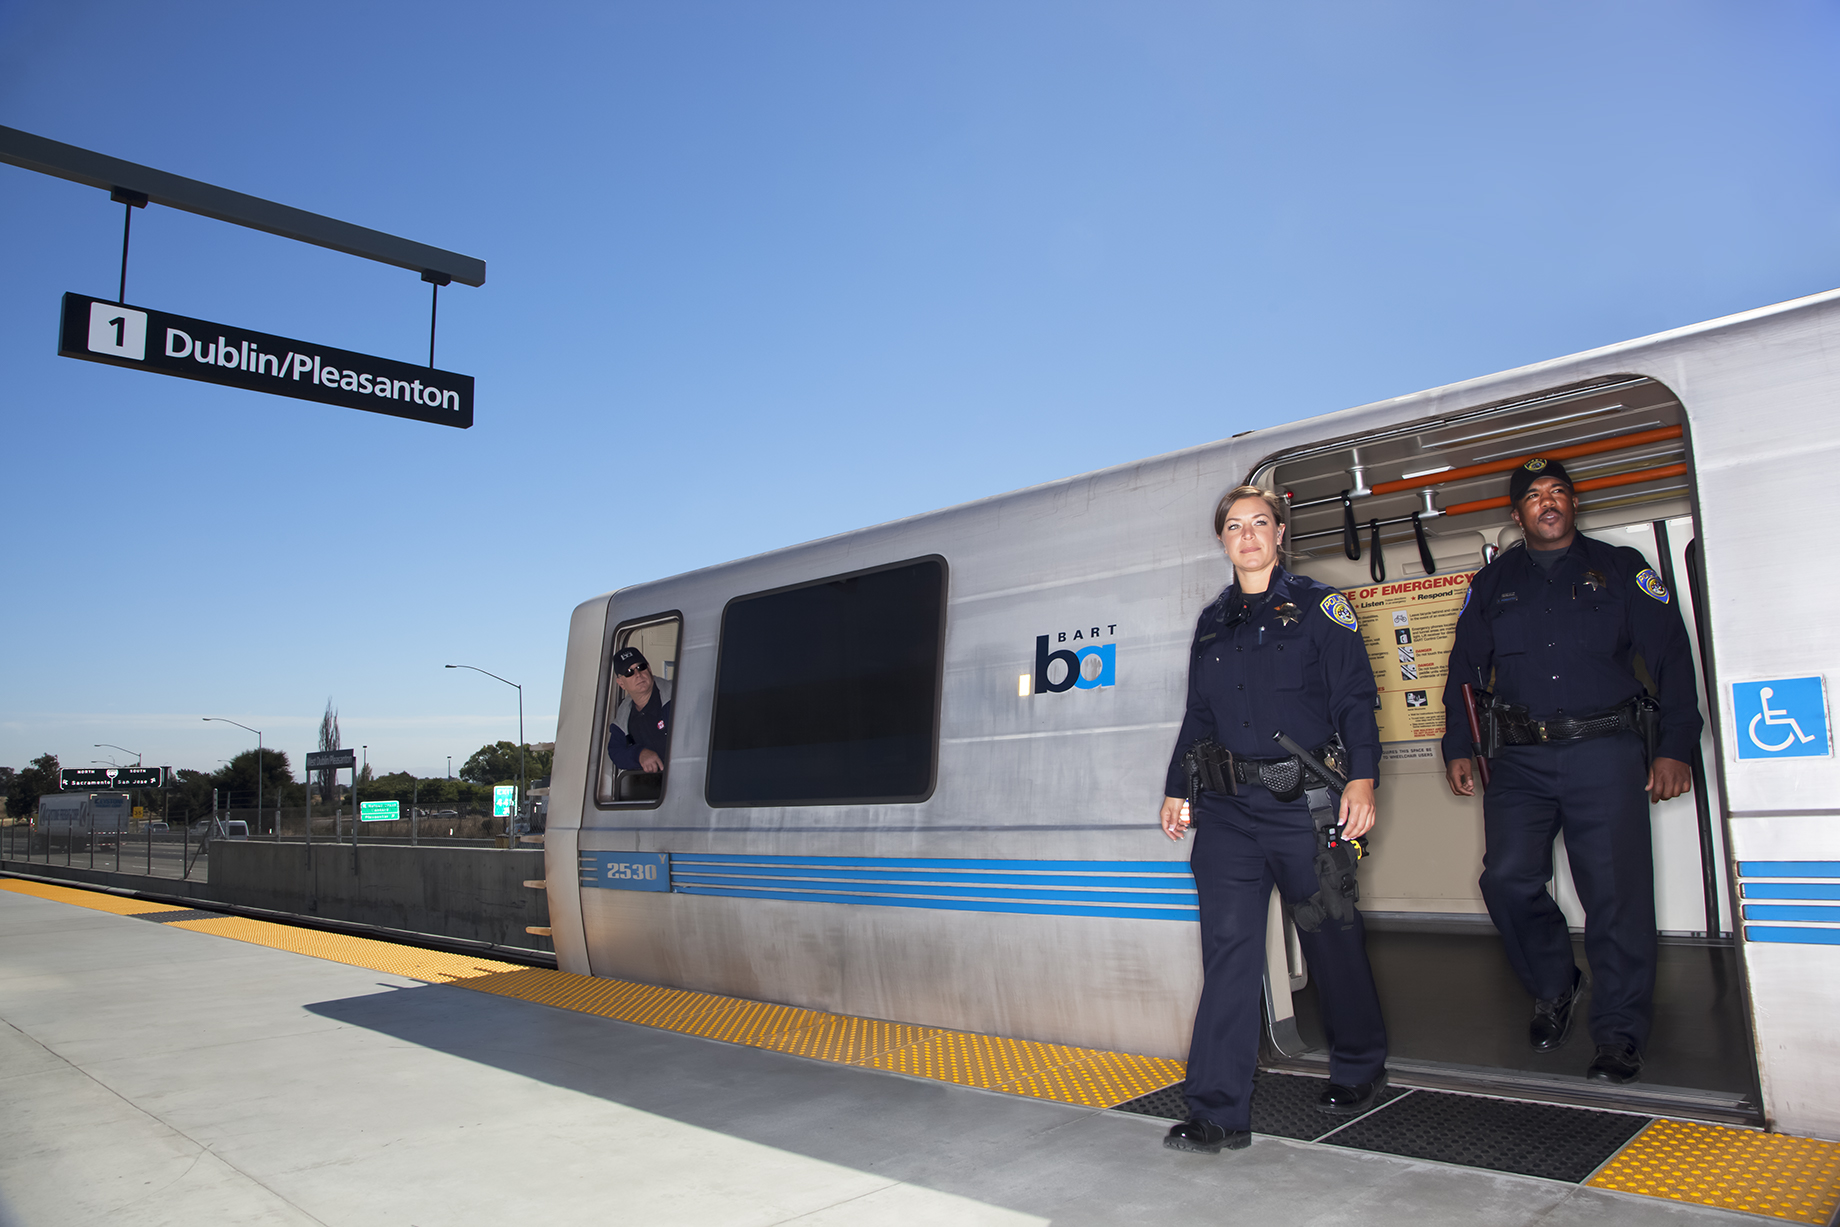 BART PD Car Campaign